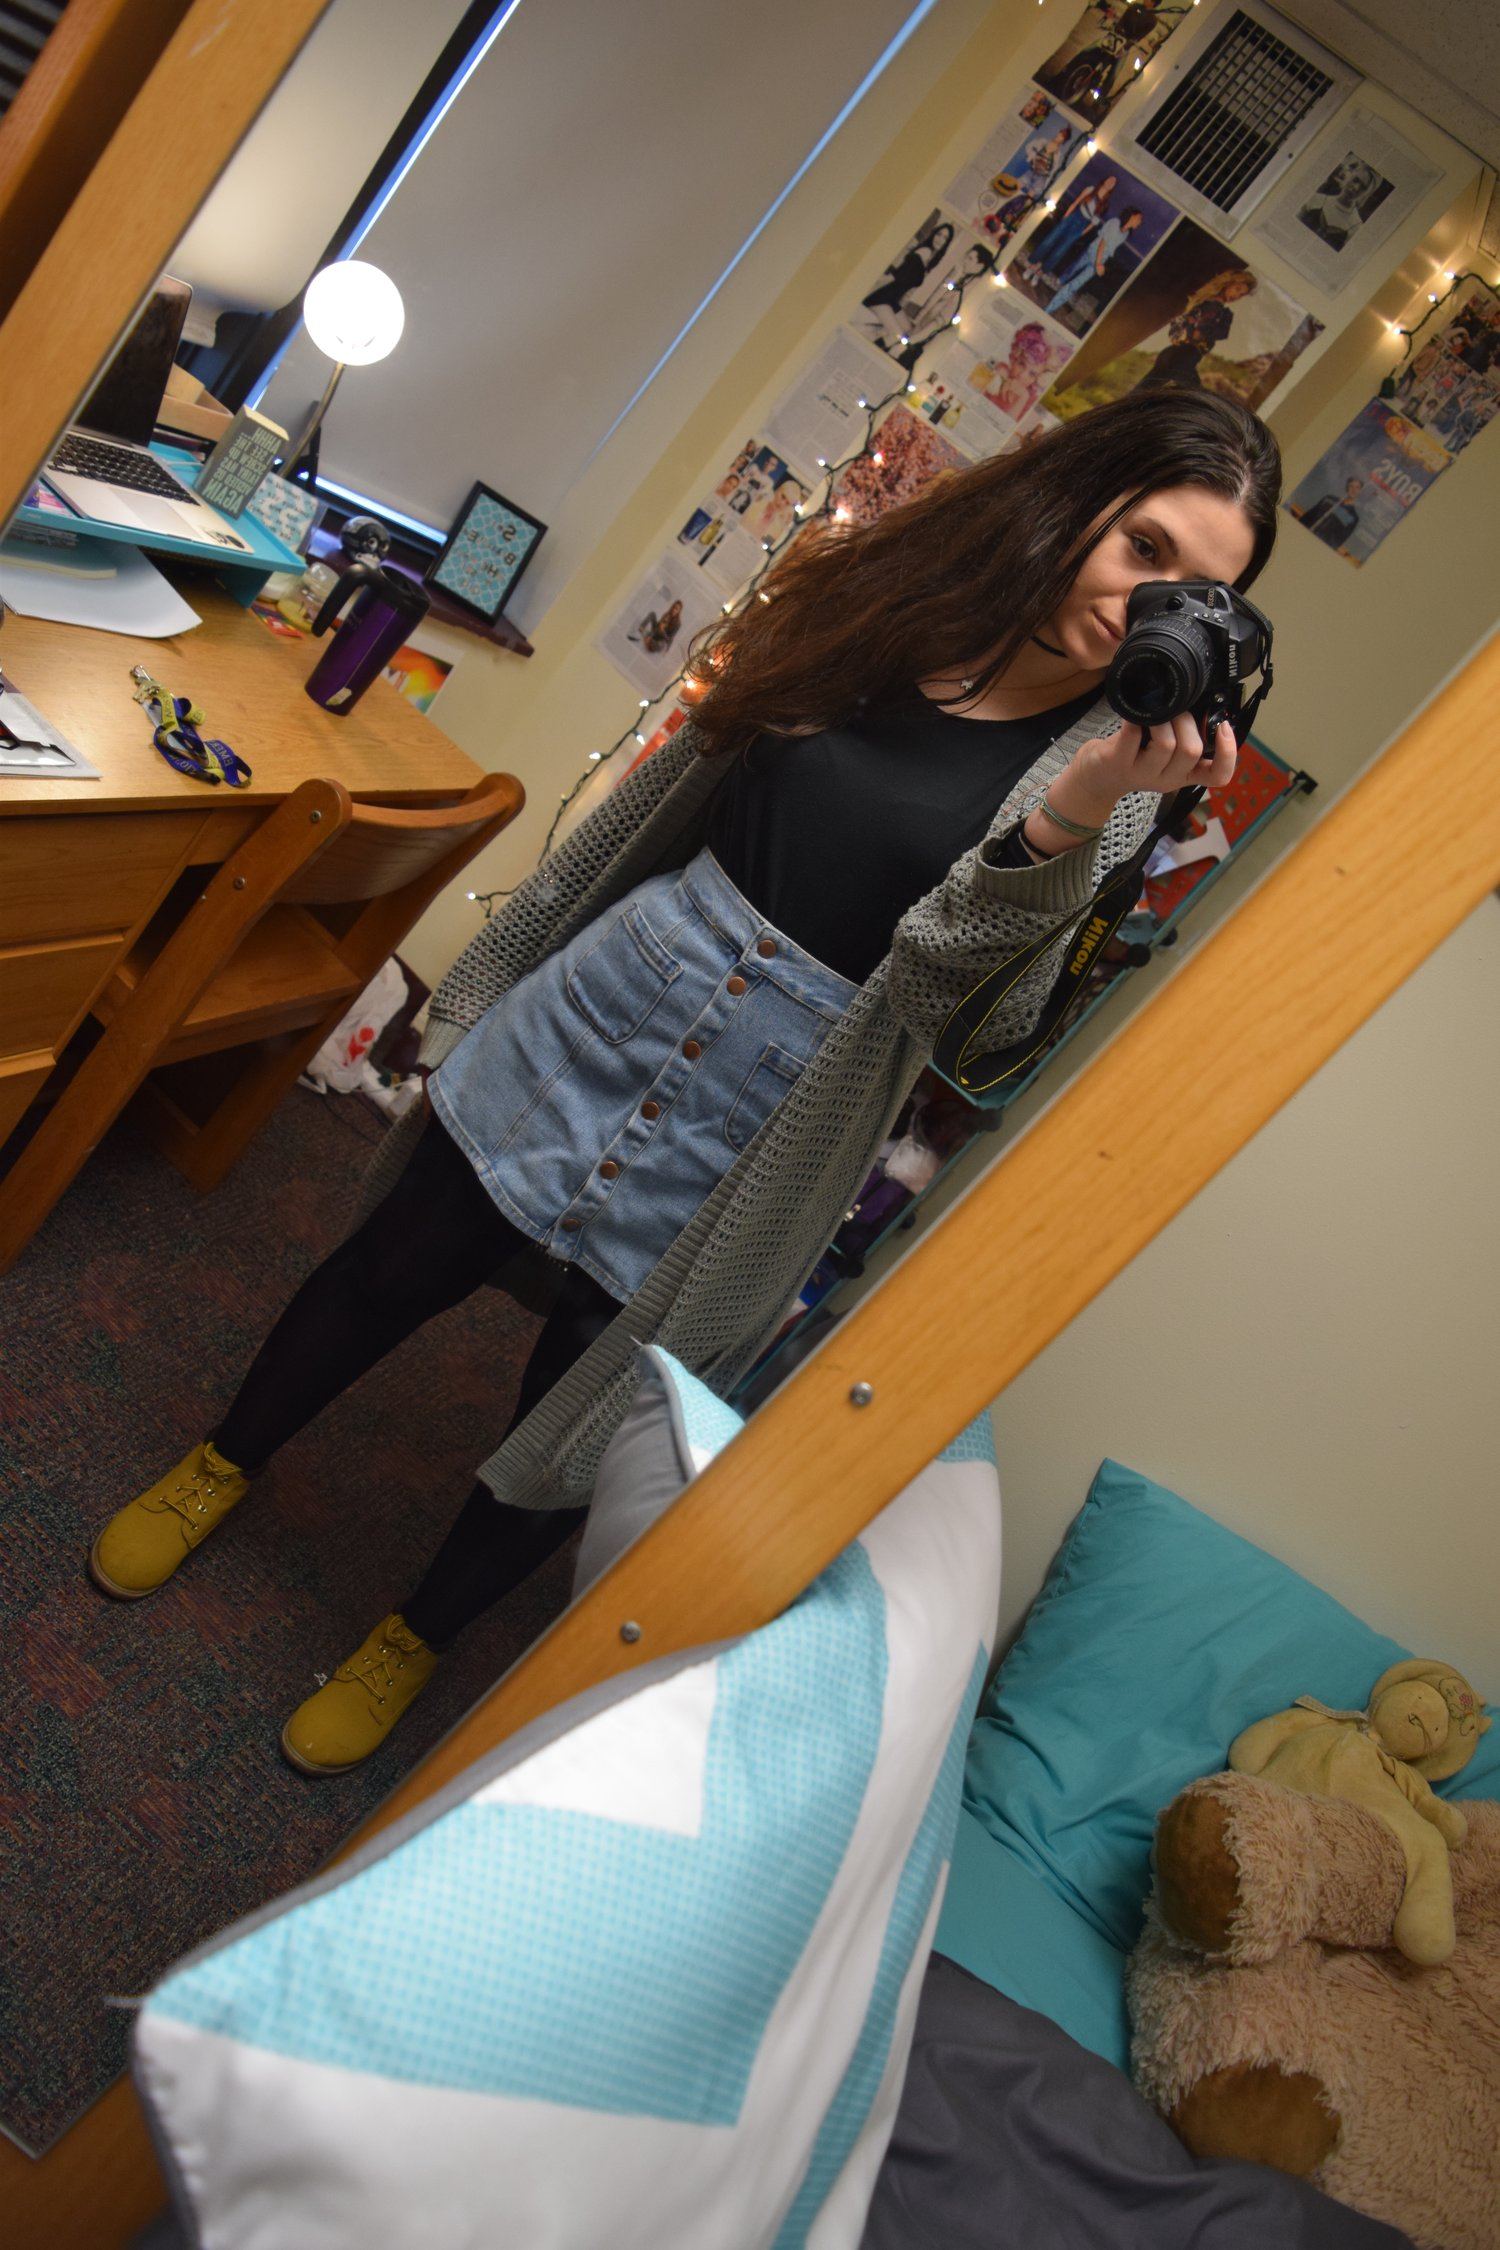 Shirt (no longer being sold at   dELiA*s  ).  Skirt  (different color).  Stockings  .  Sweater (no longer being sold at   The Gap  ). Boots (no longer being sold at   Primark  ).